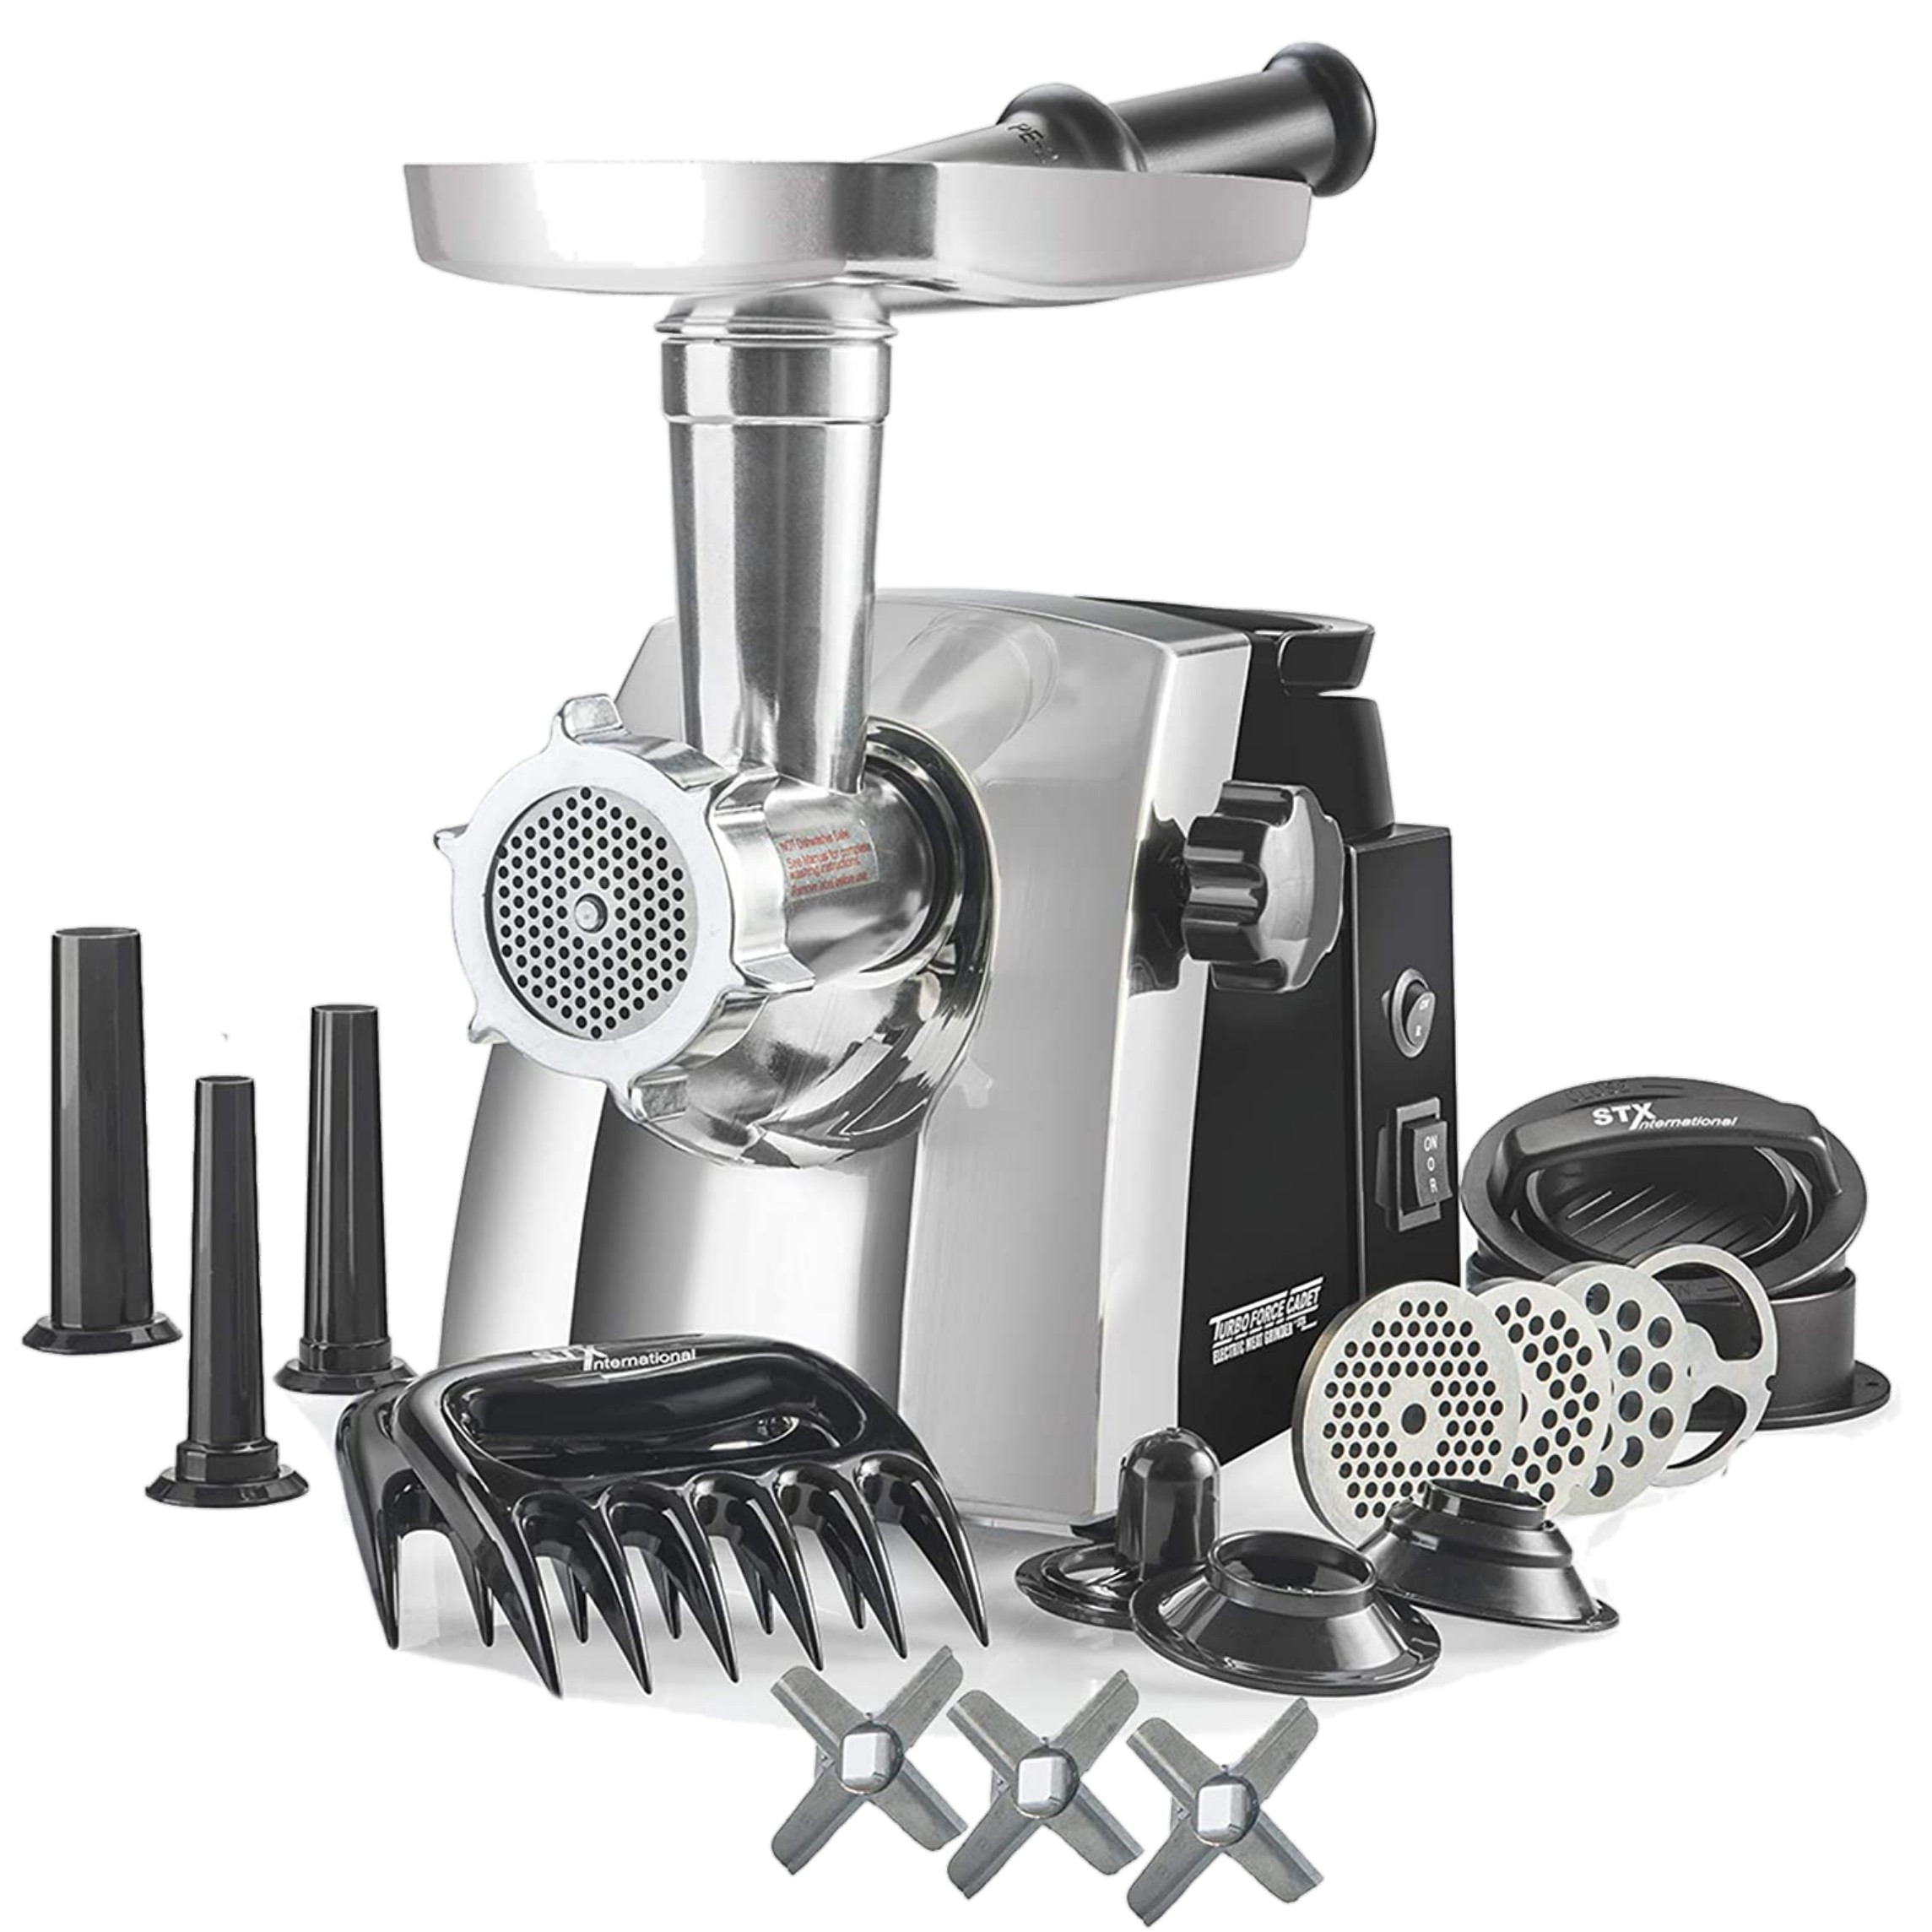 STX international meat grinder reviews